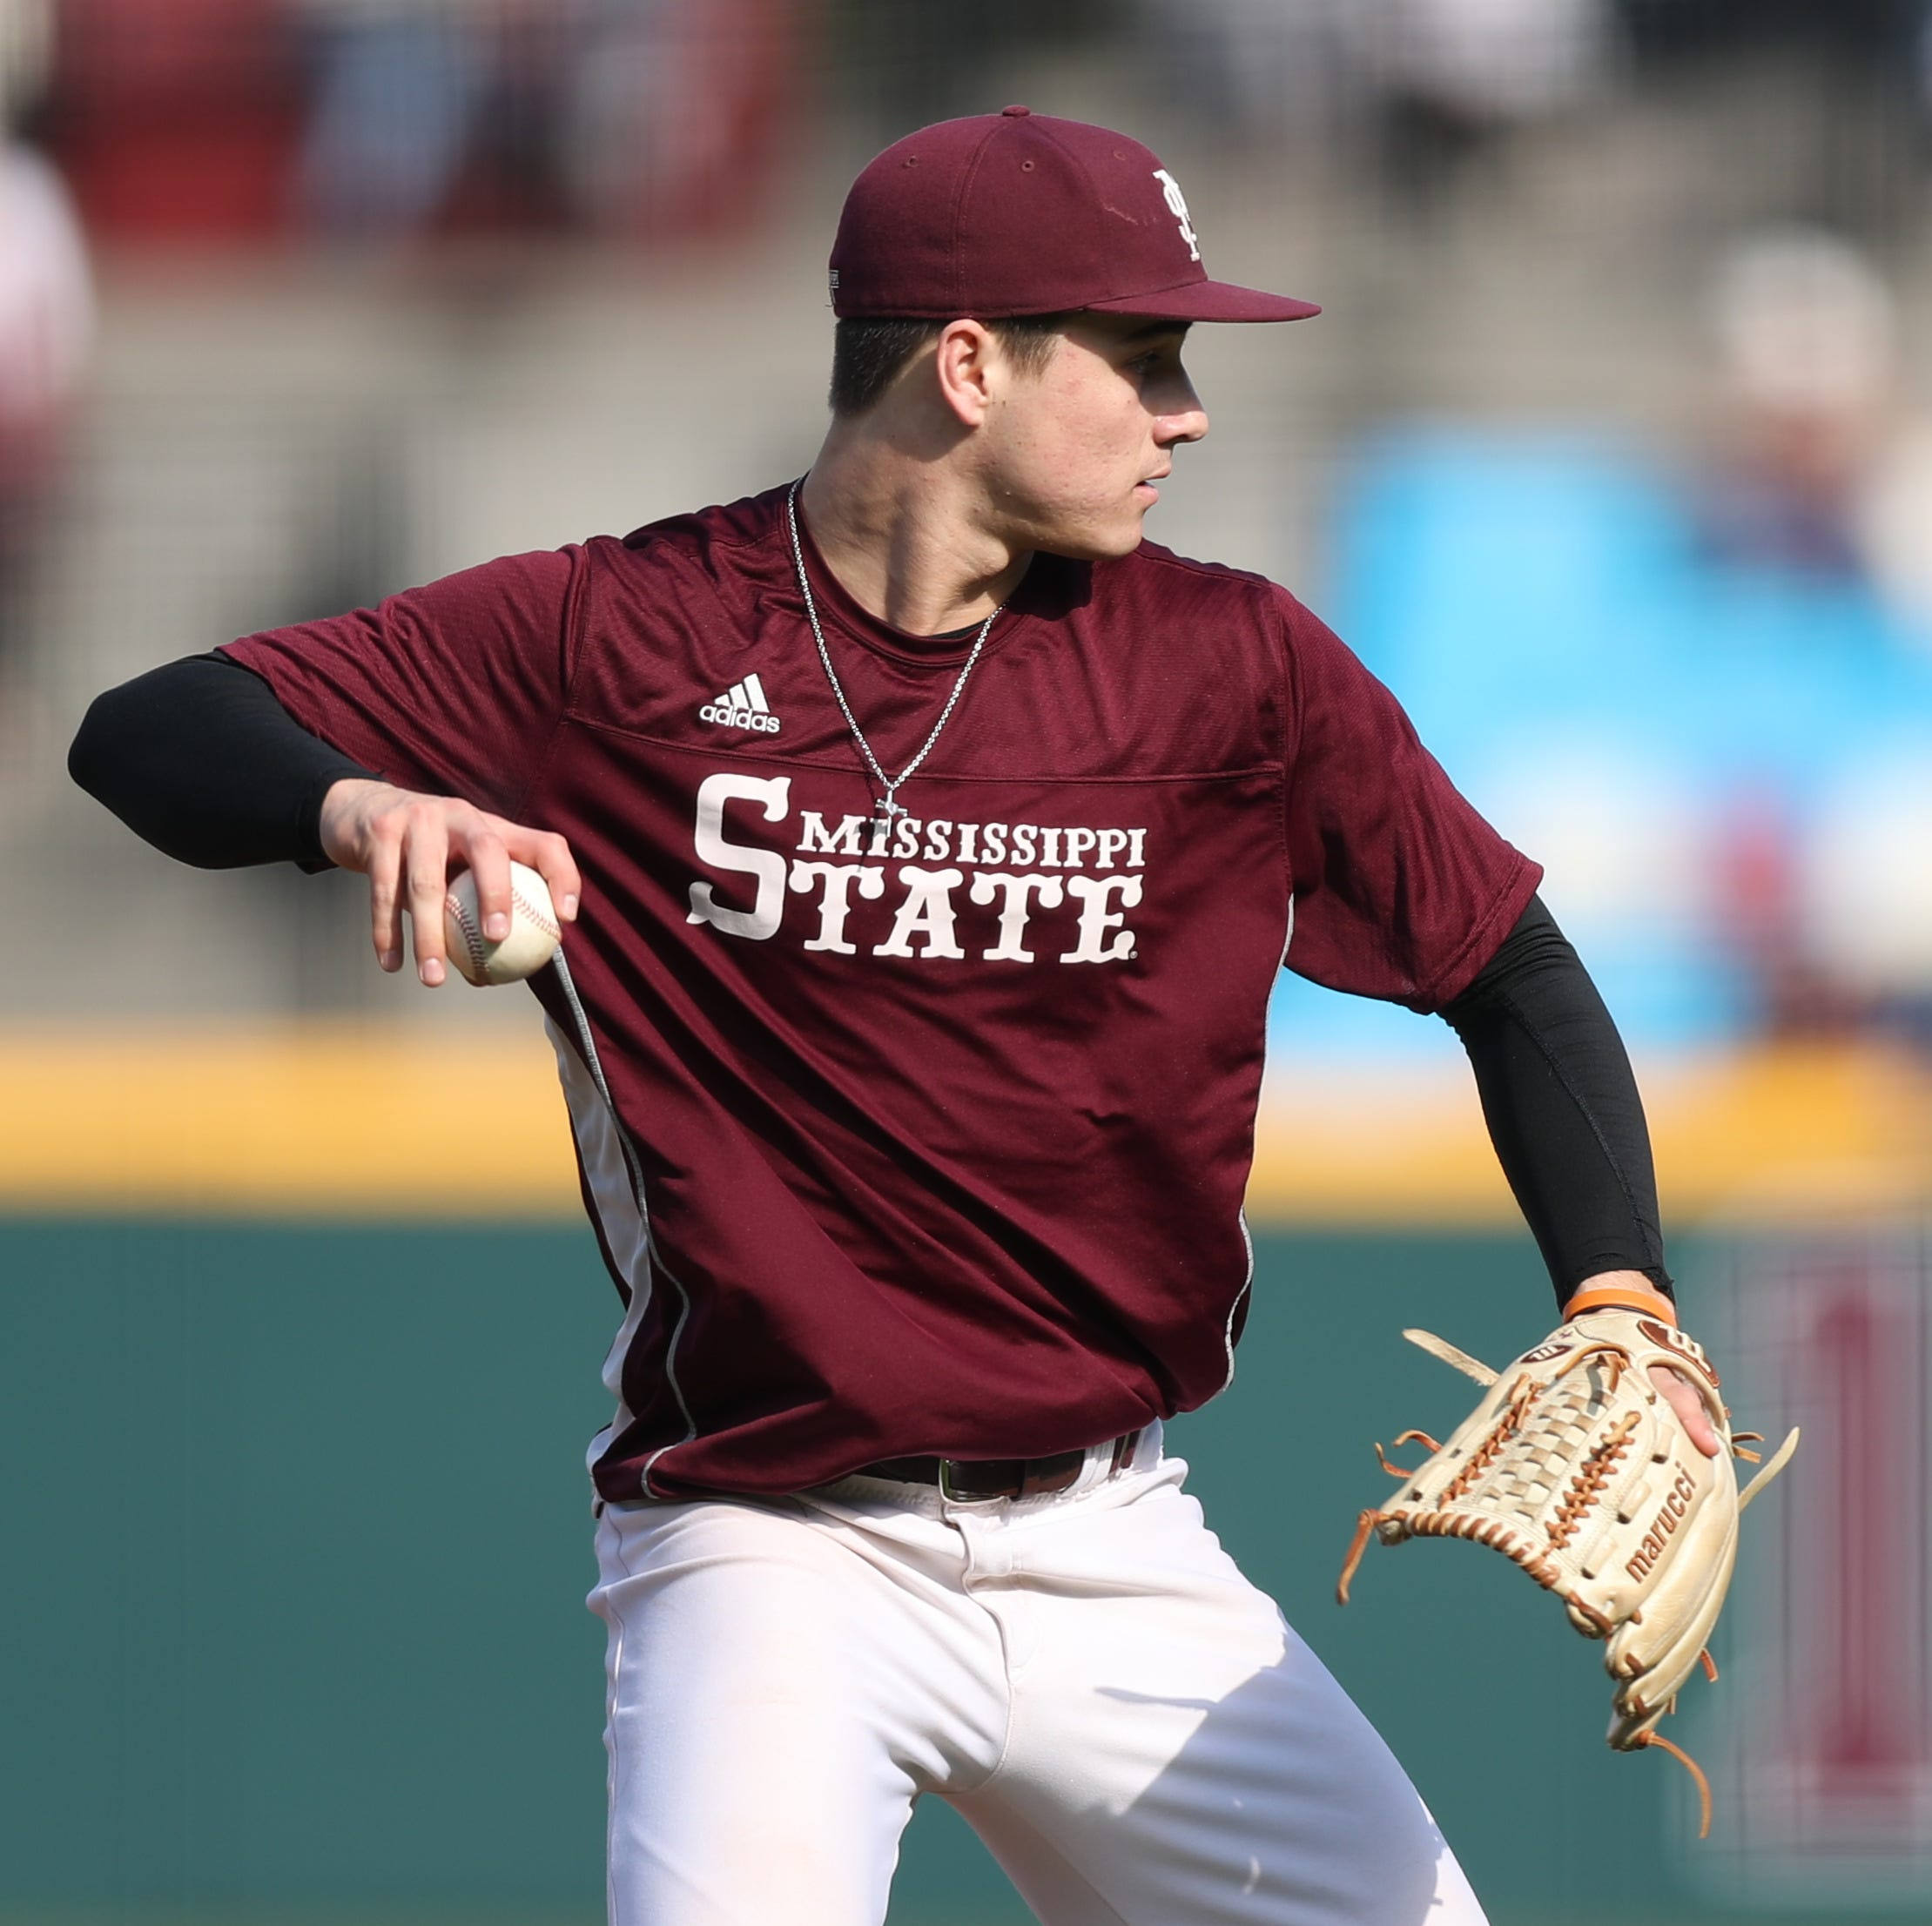 'A dream come true': J.T. Ginn ready for freshman season at Mississippi State